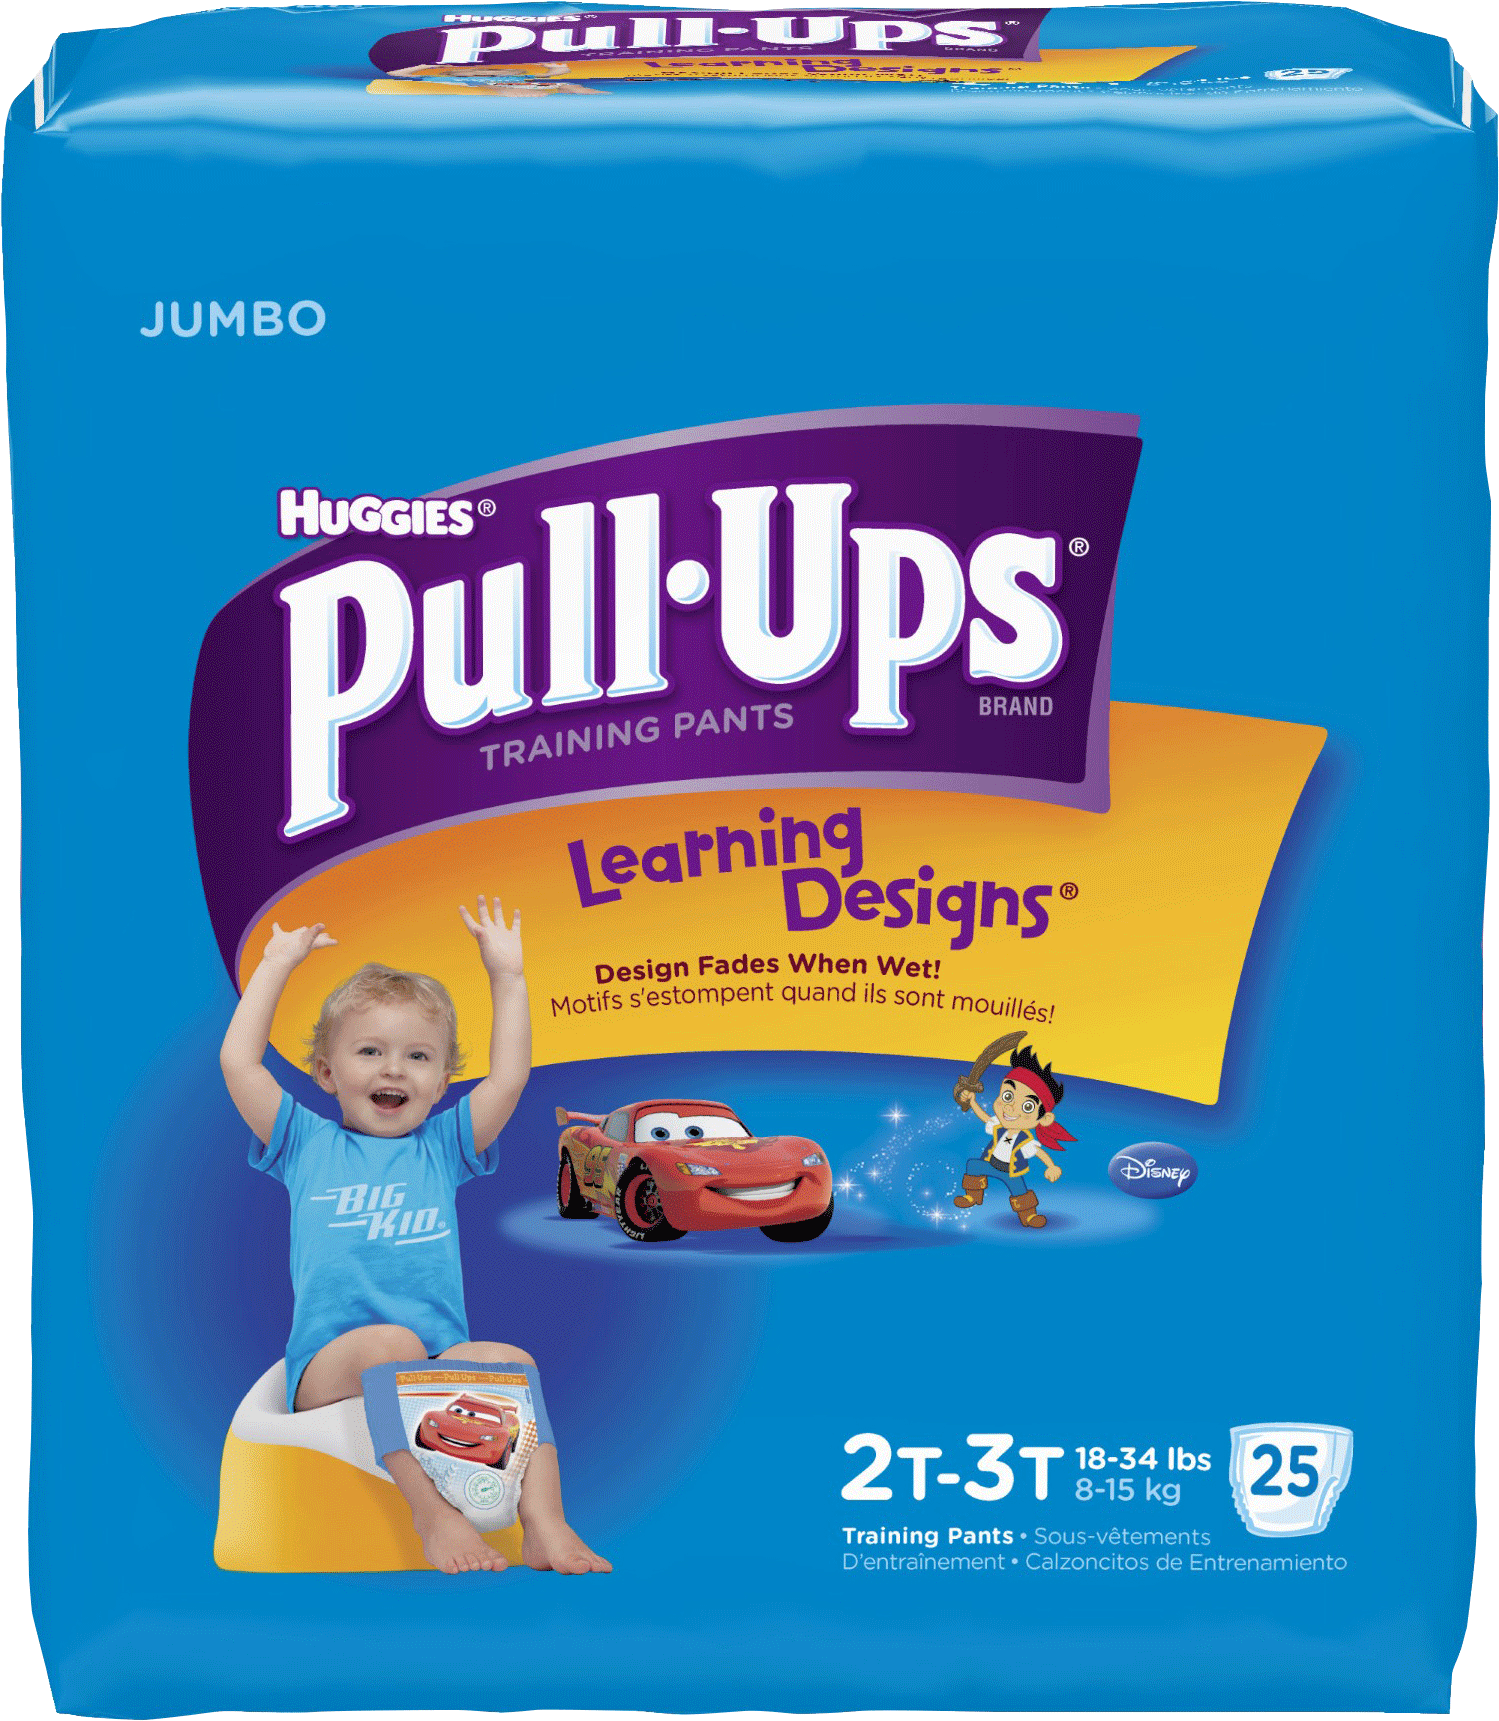 Pull-Ups Learning Designs Training Pants, 2T-3T Boy, Jumbo Pack